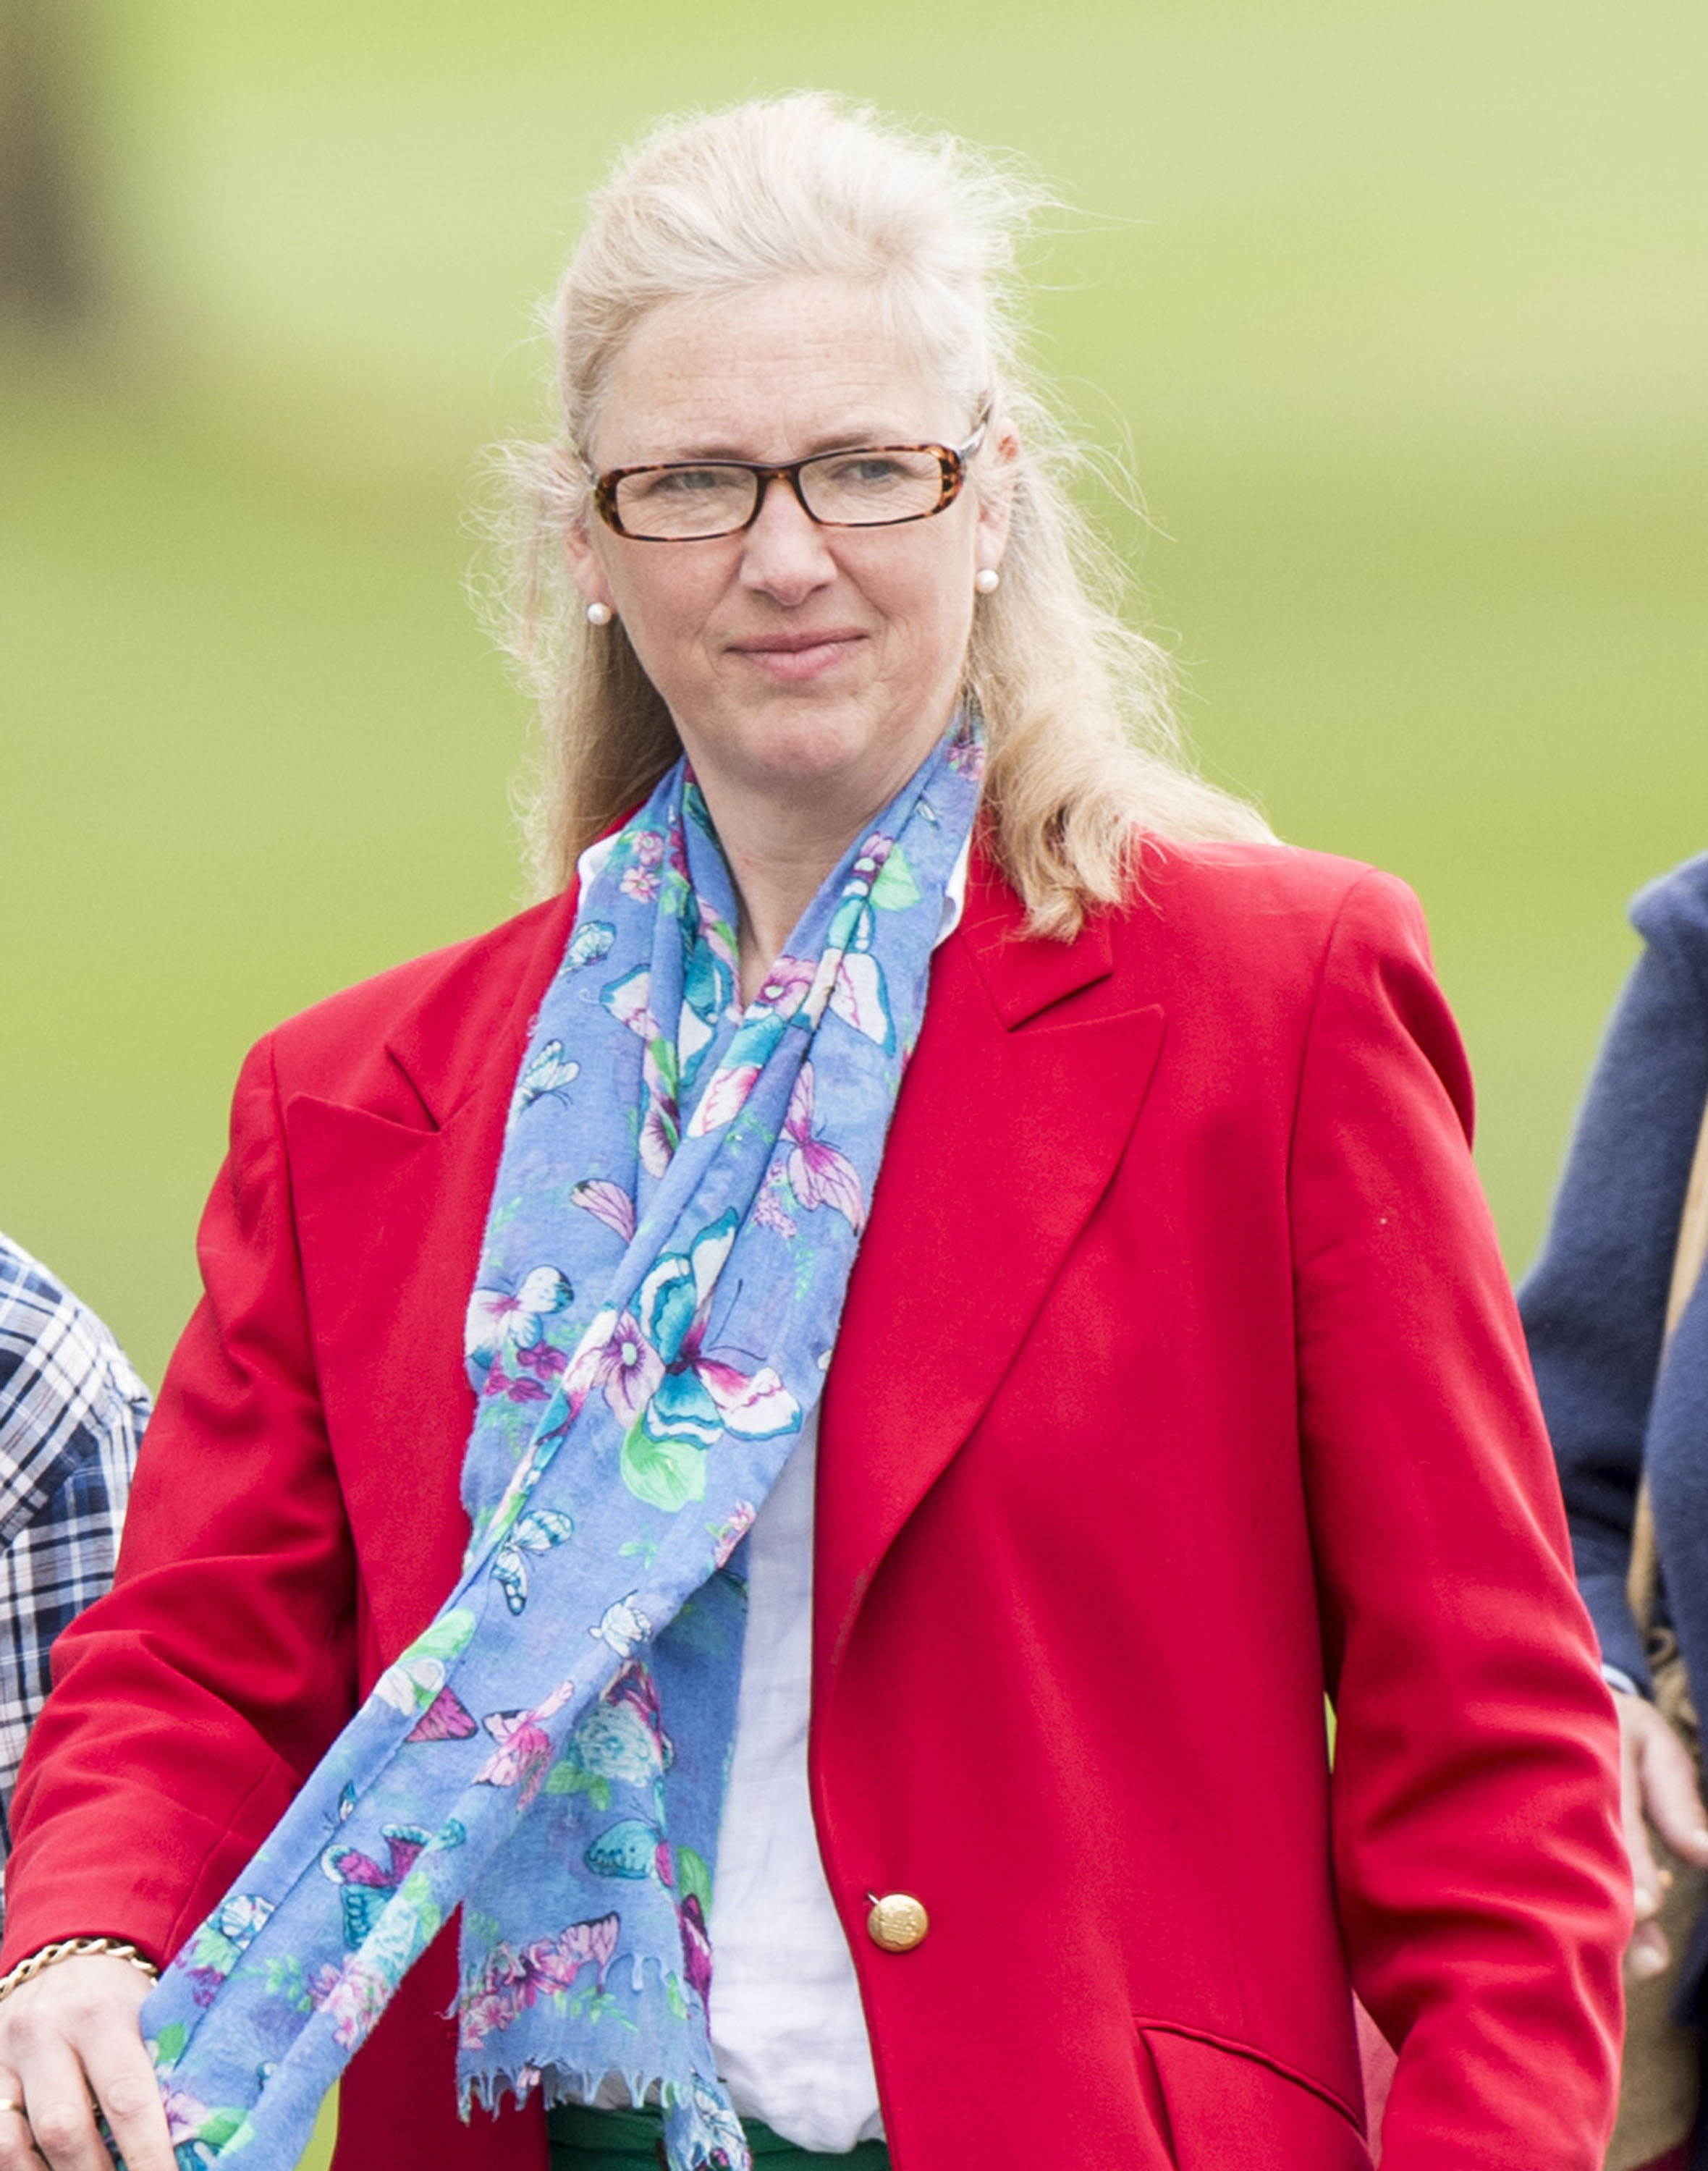 Tiggy Pettifer was seen in Windsor on the day of the christening last July [Image: Getty]